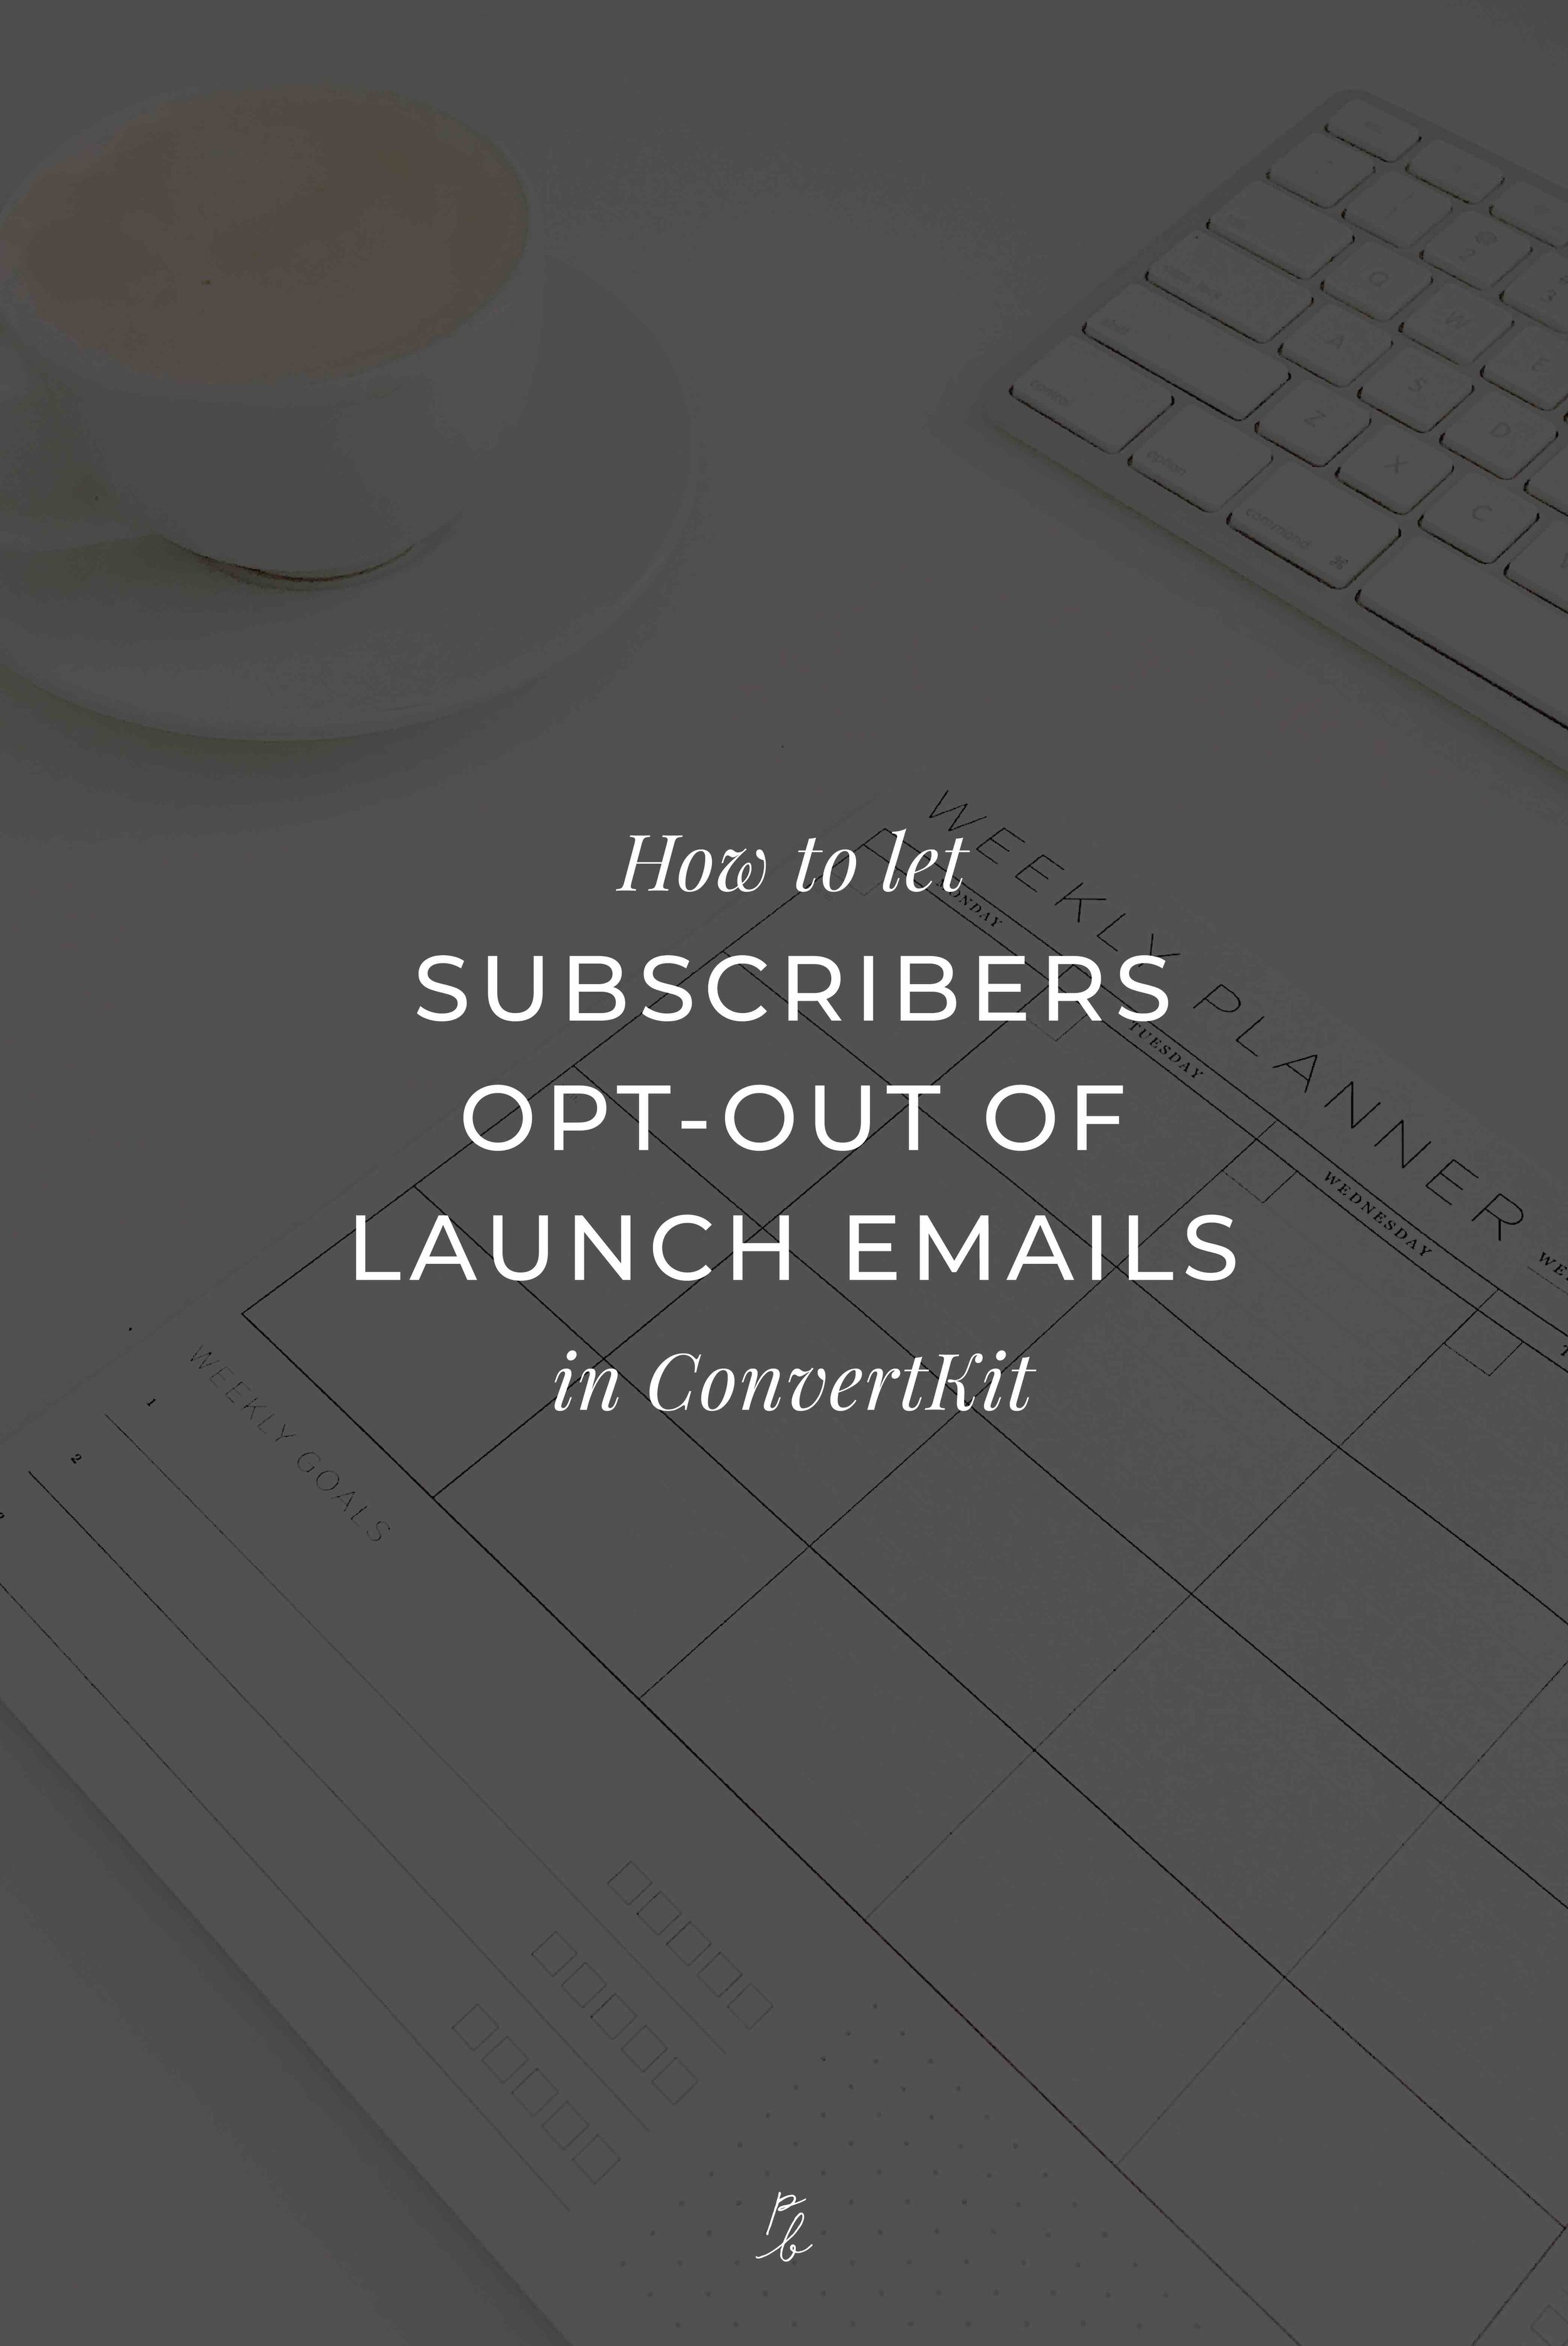 How to let subscribers opt-out of launch emails in ConvertKit-07.jpeg